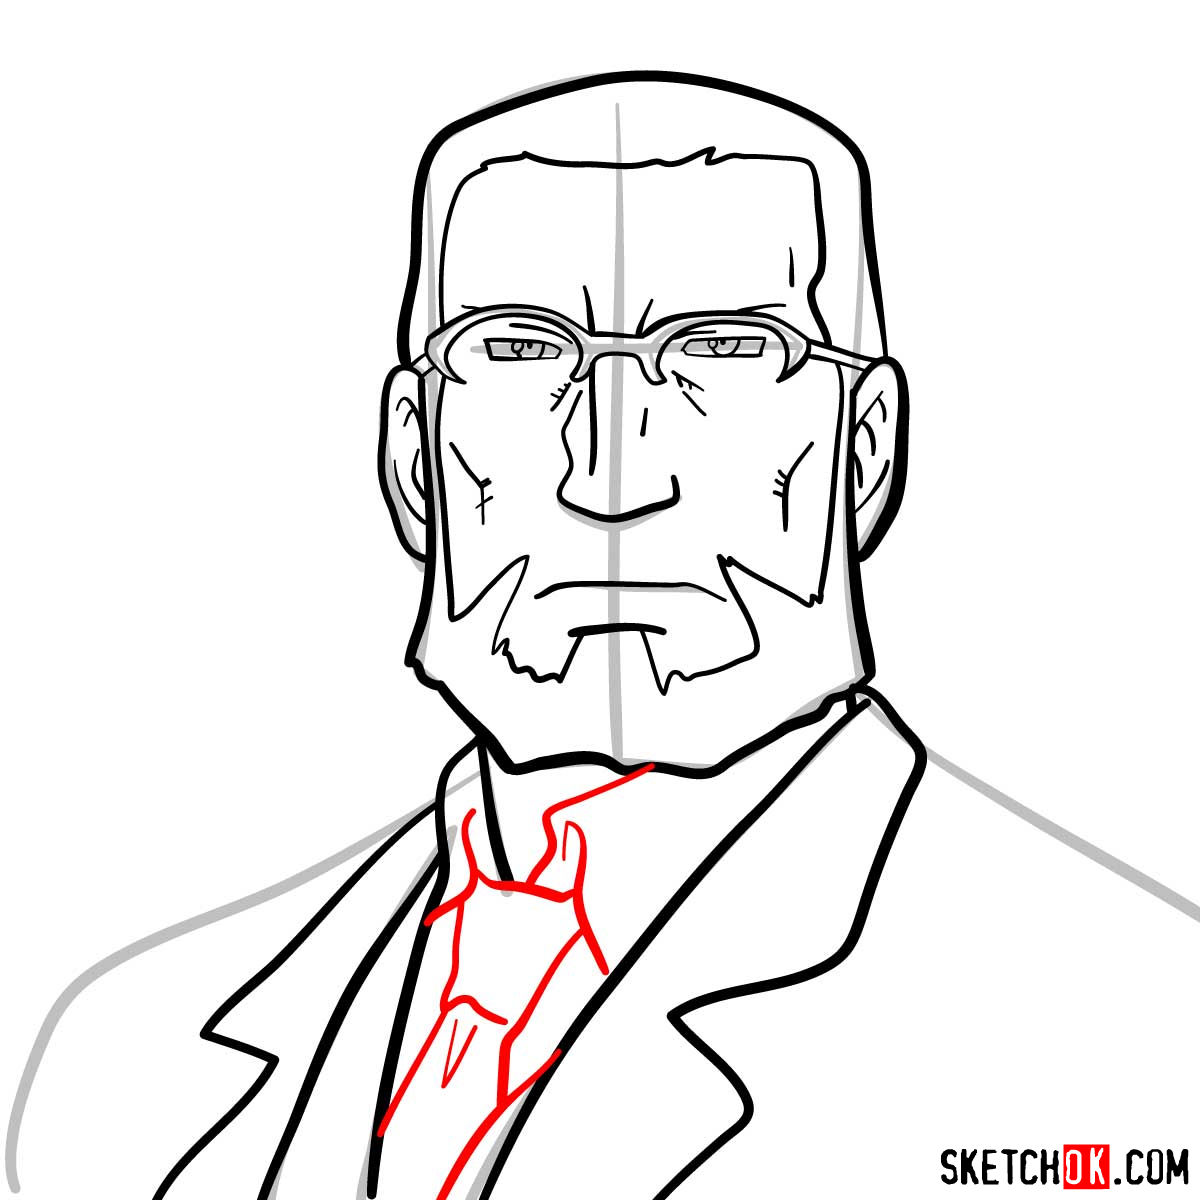 How to draw Van Hohenheim from Fullmetal Alchemist anime - step 08